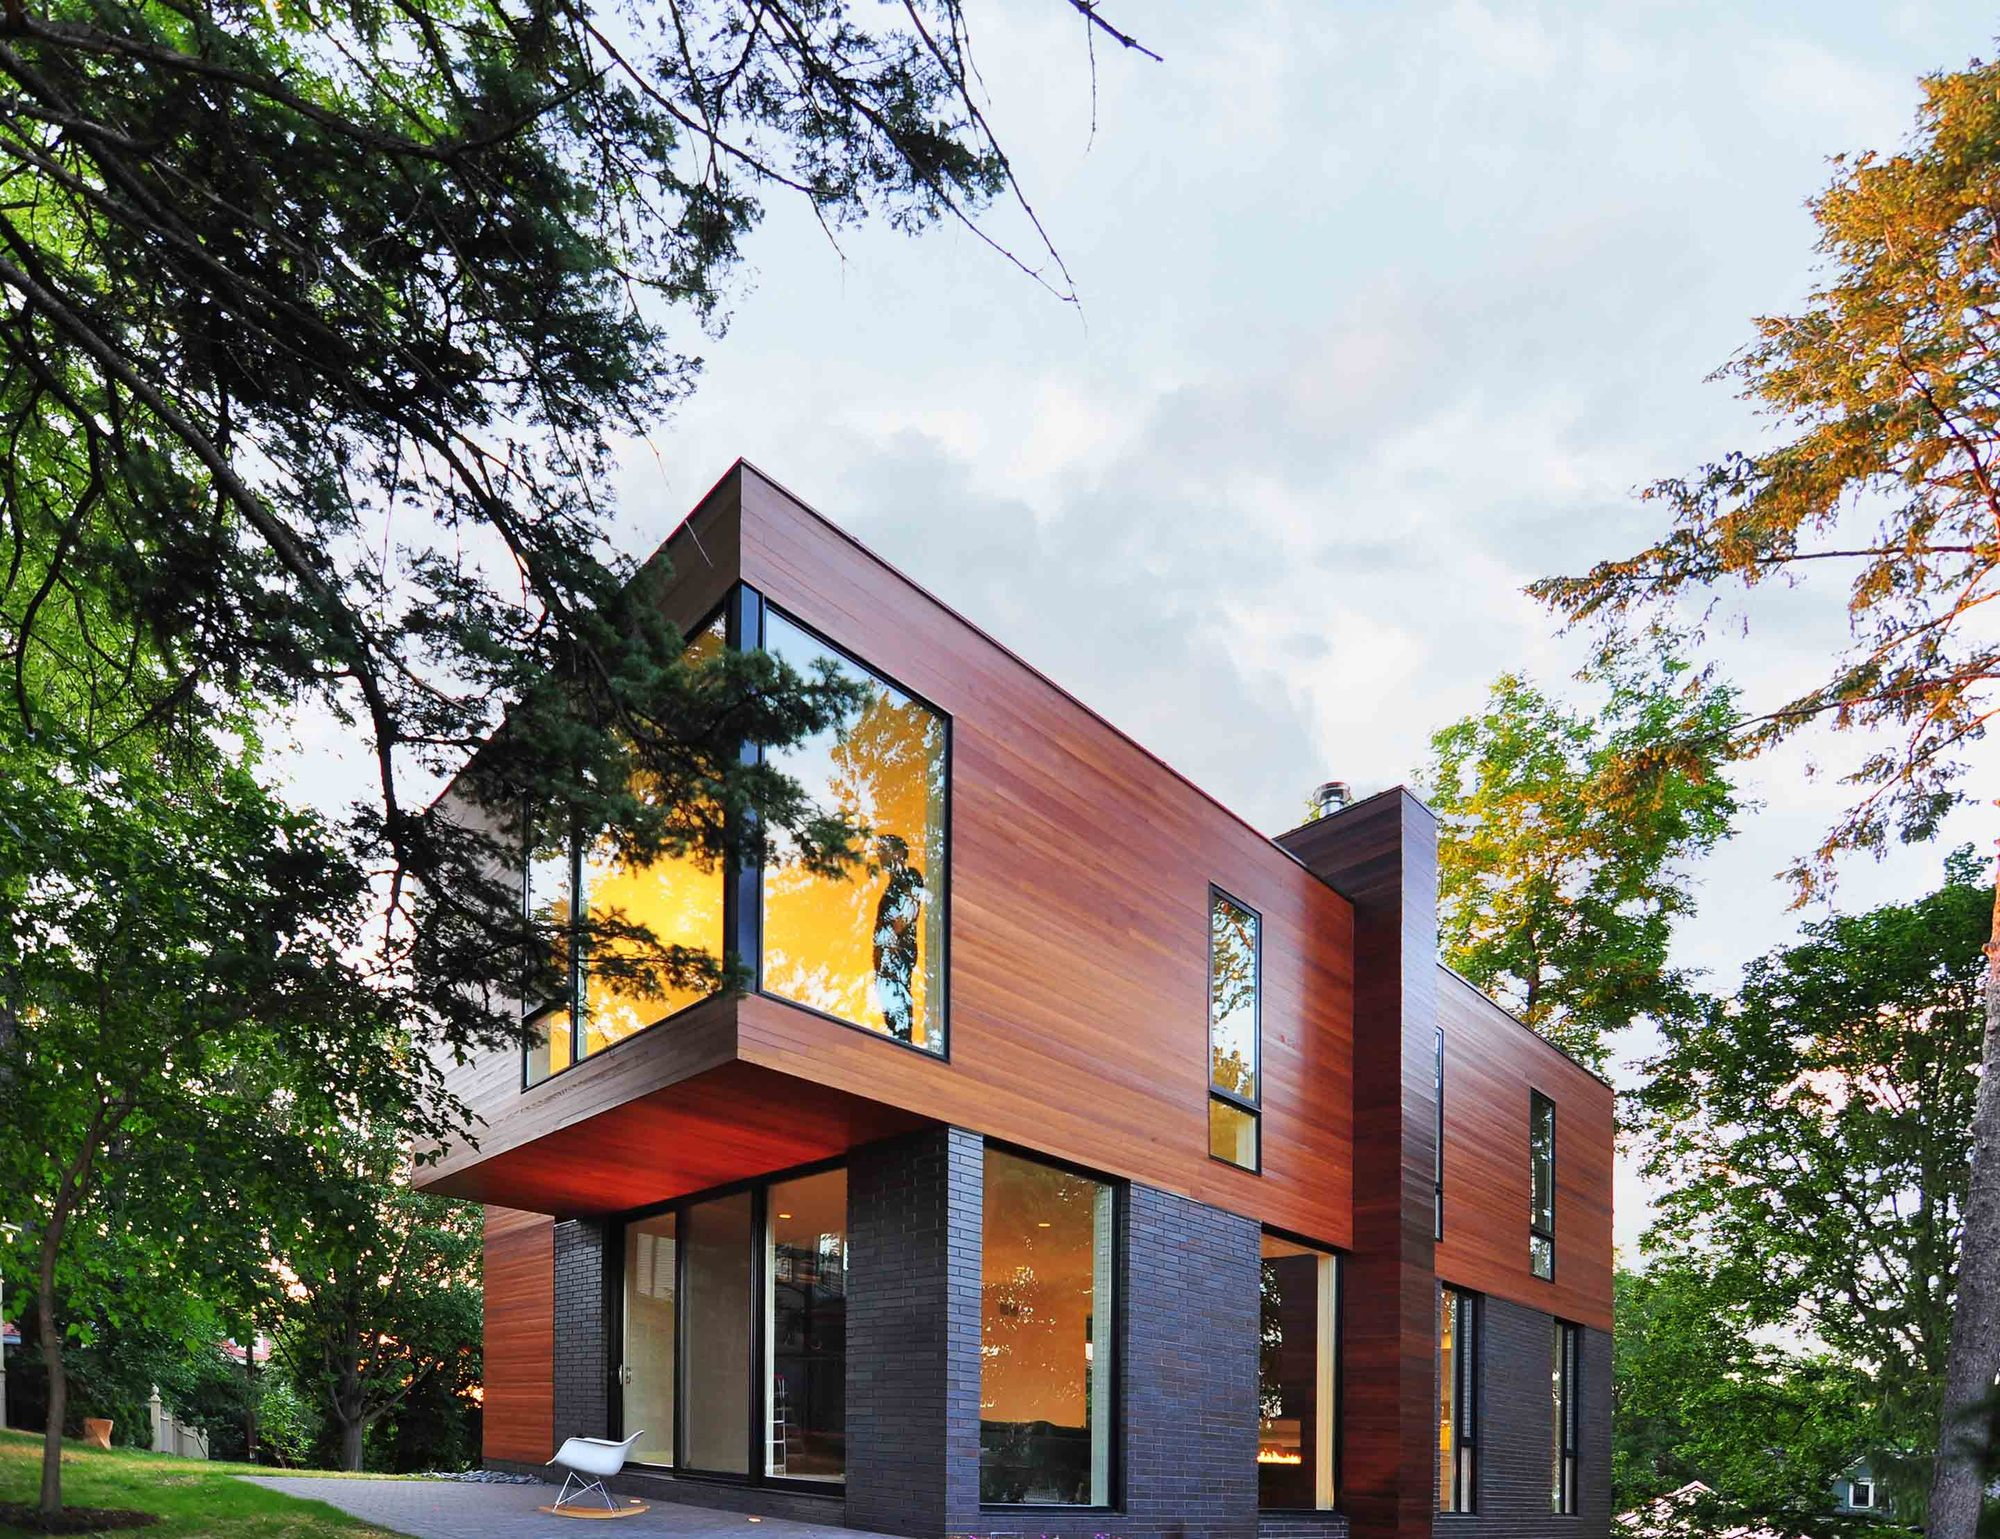 Casa Nexus / Johnsen Schmaling Architects, © John J. Macaulay